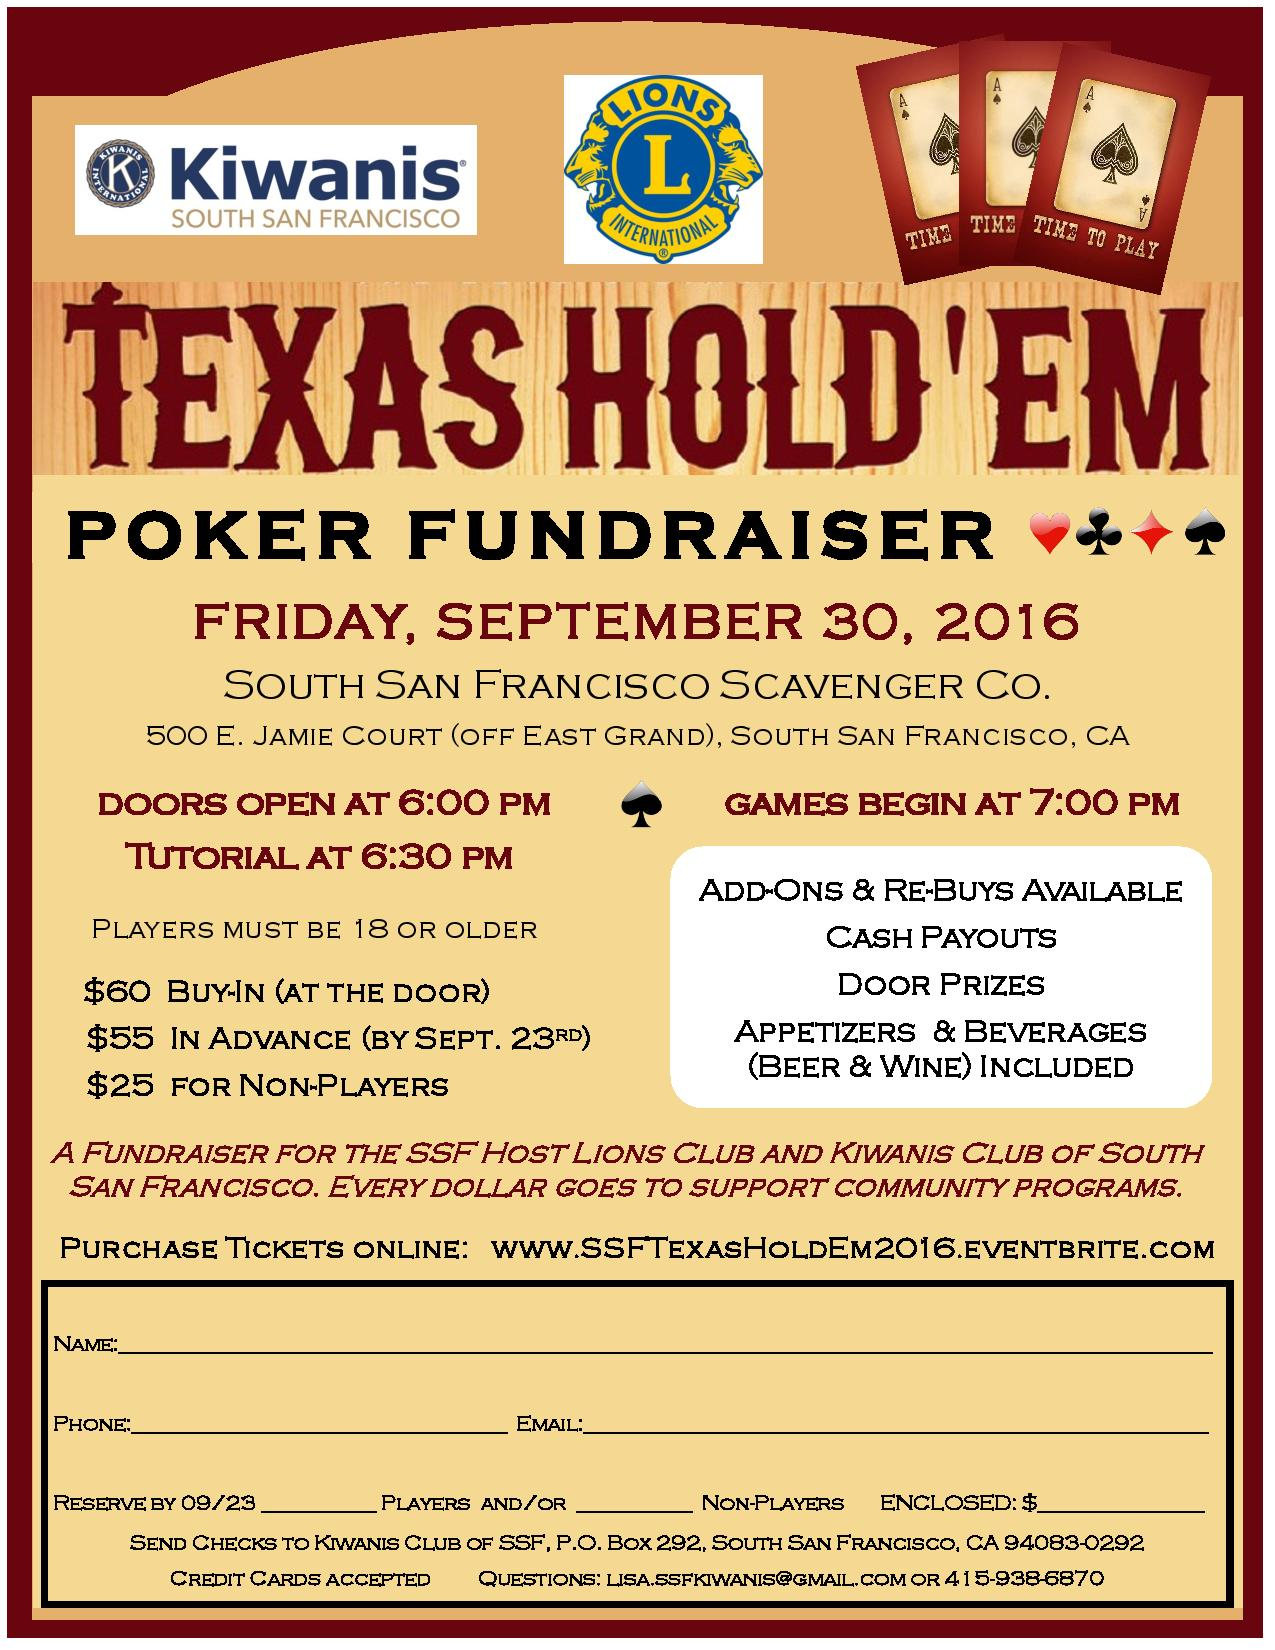 2016-09-30-texas-hold-em-fundraiser_2-page-001